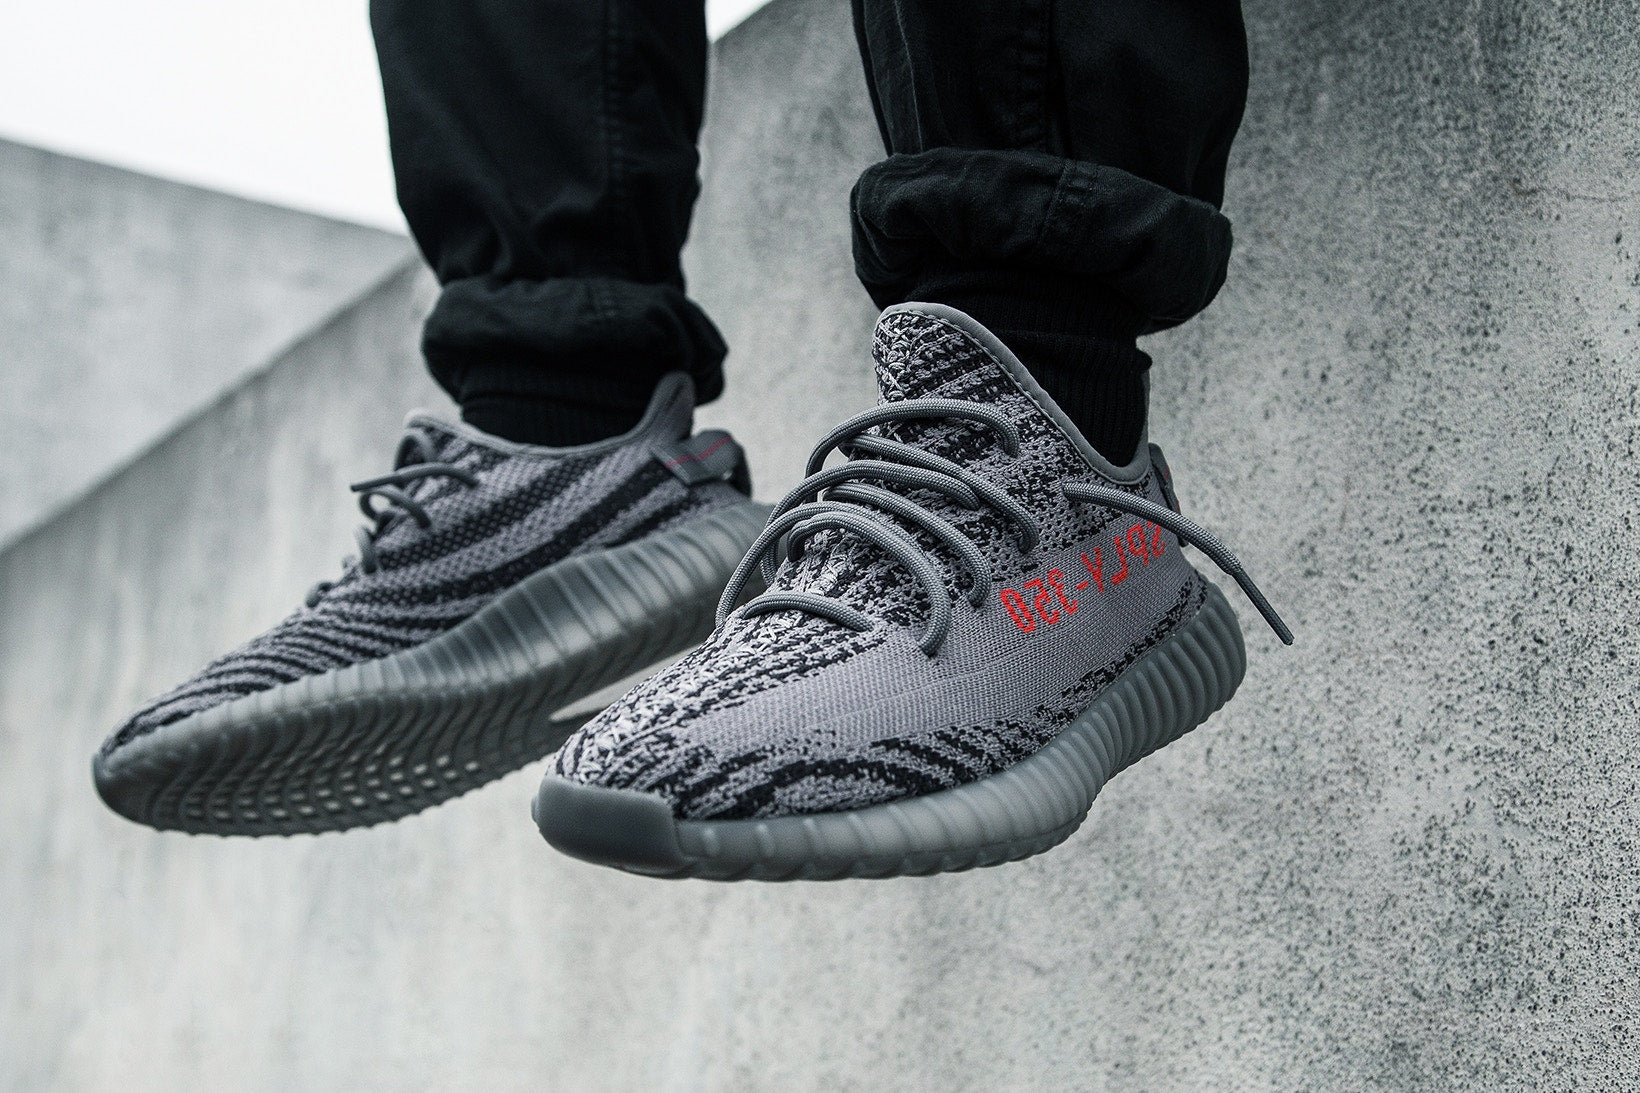 best website af341 c4123 Beluga 2.0 - adidas Originals Yeezy Boost 350 V2